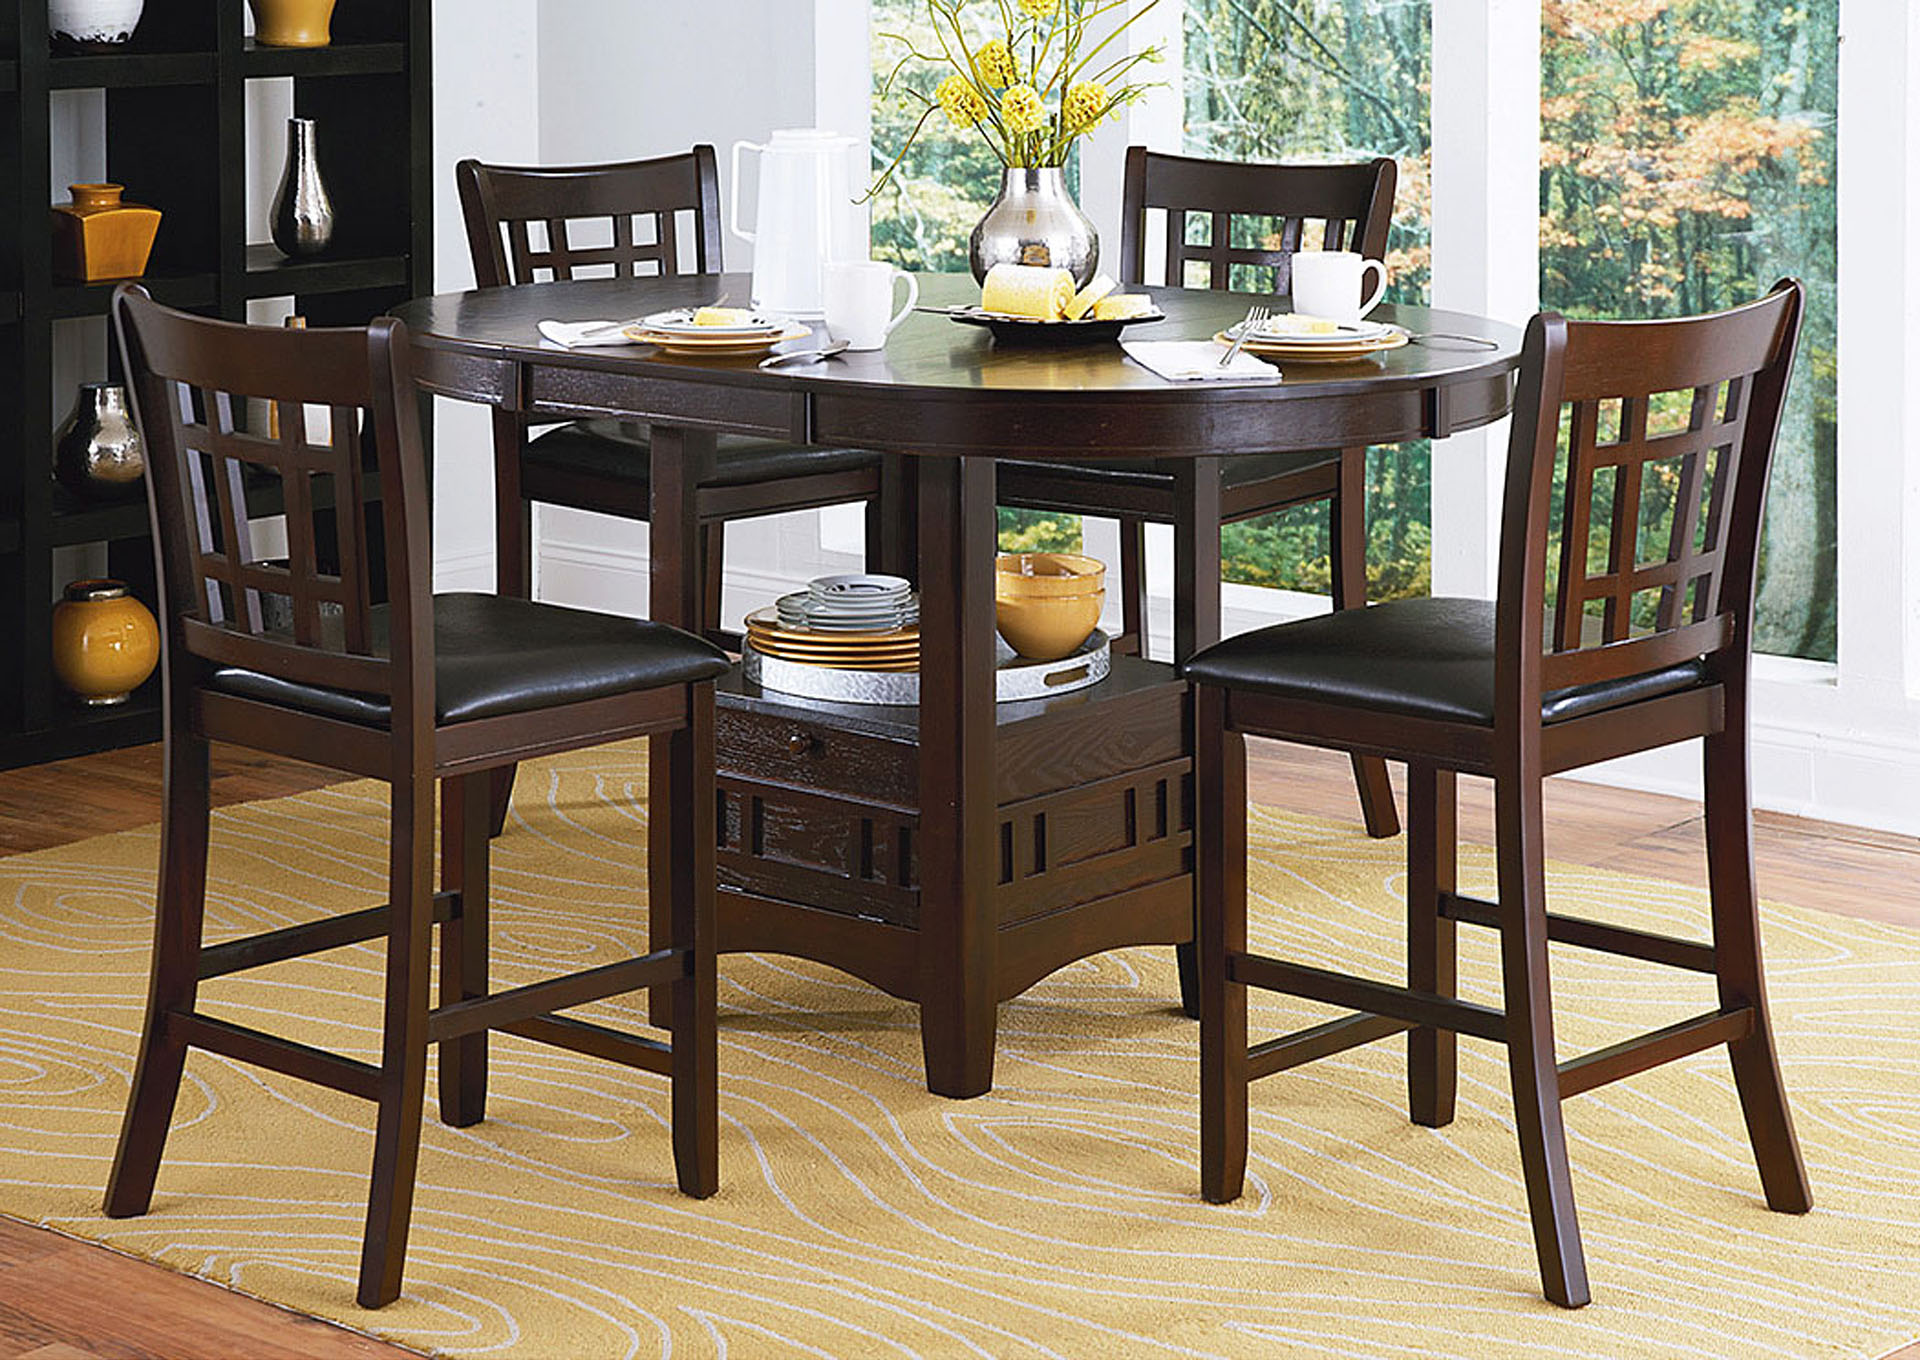 Junipero Counter Height Dining Table w/4 Counter Height Chairs,Homelegance